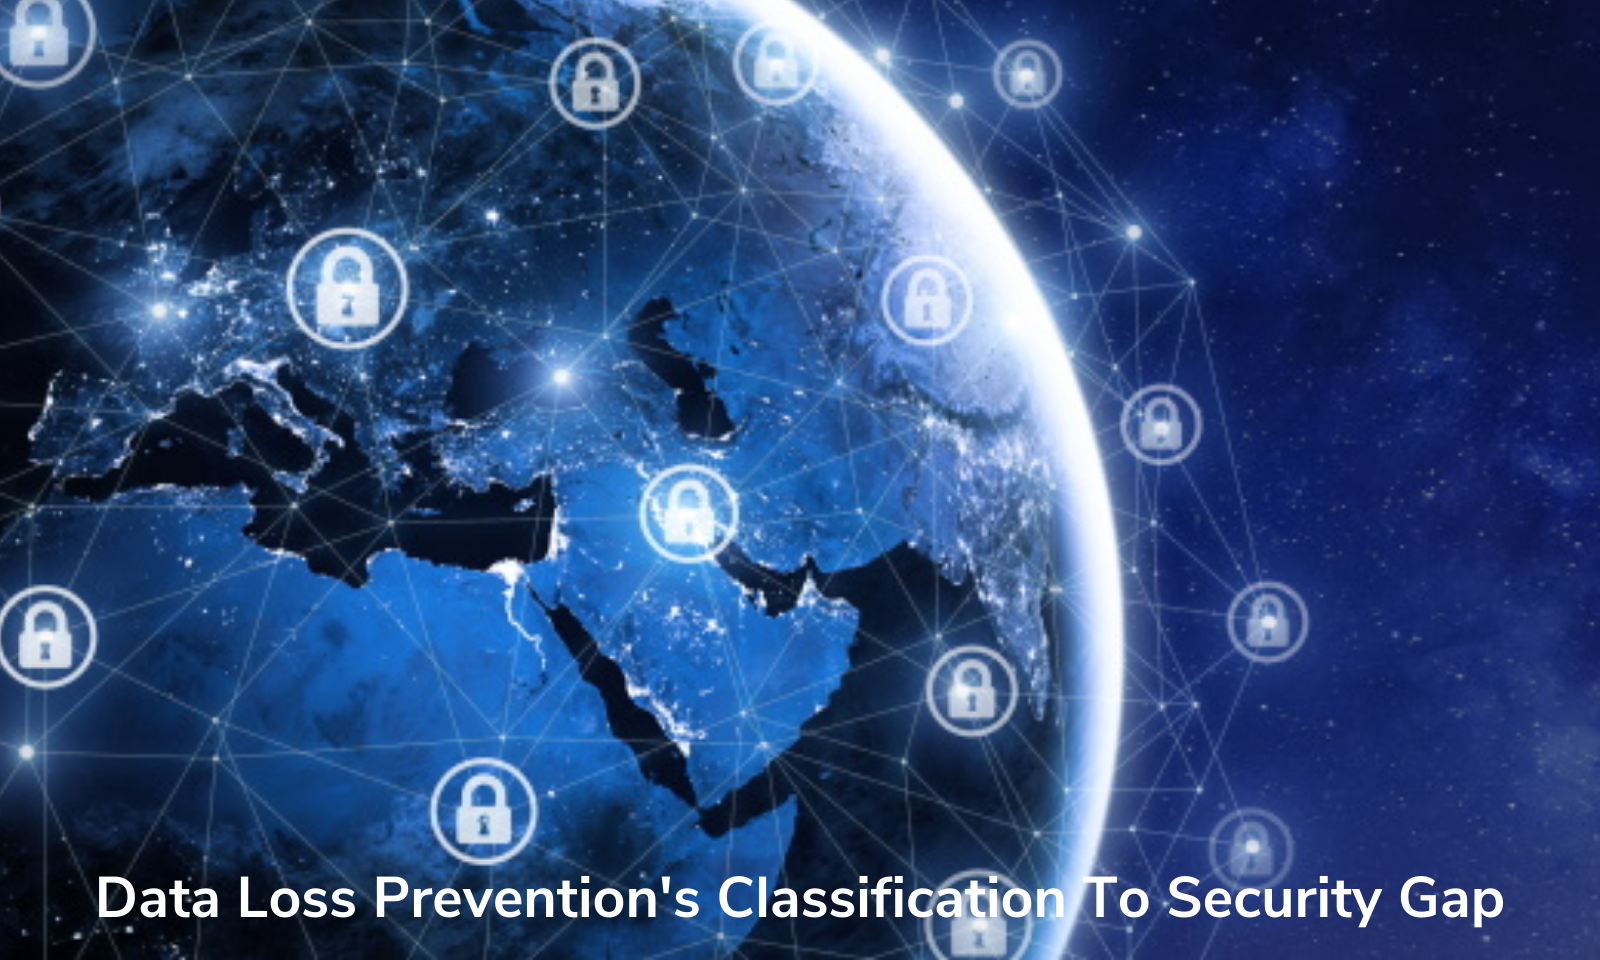 Data Loss Prevention's Classification To Security Gap